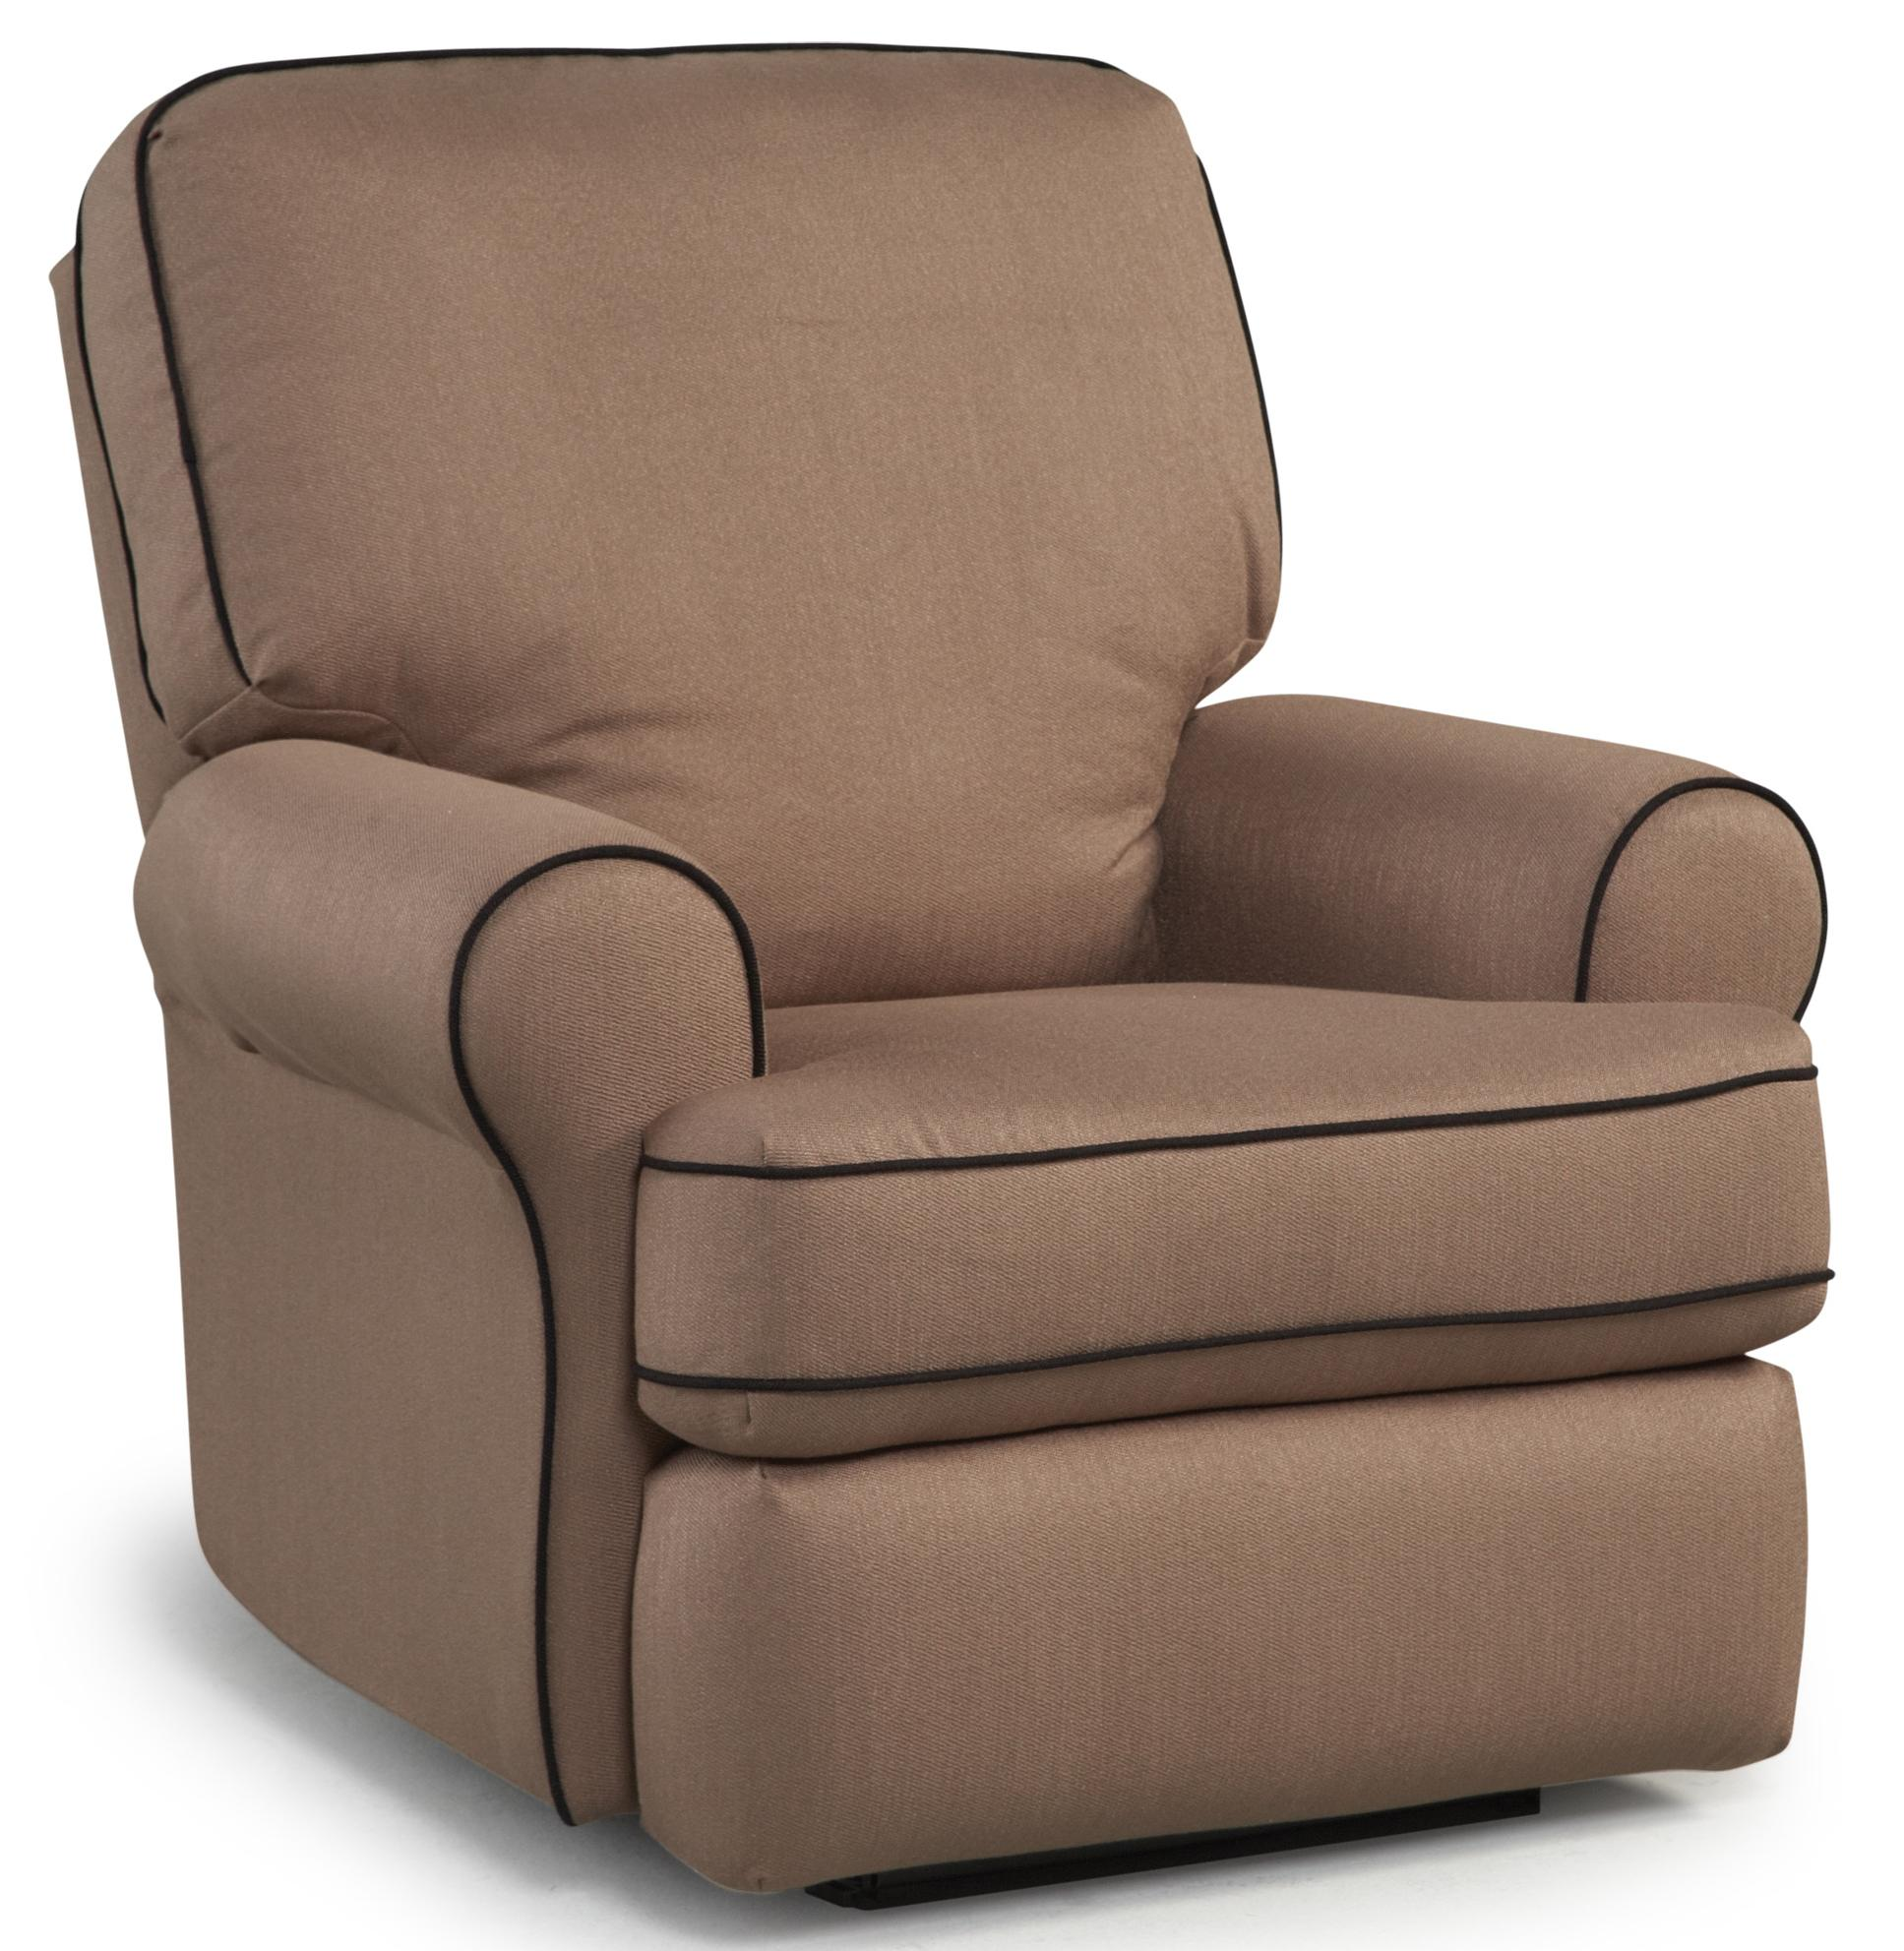 Best Chairs Storytime Series Storytime Recliners 5ni25sc